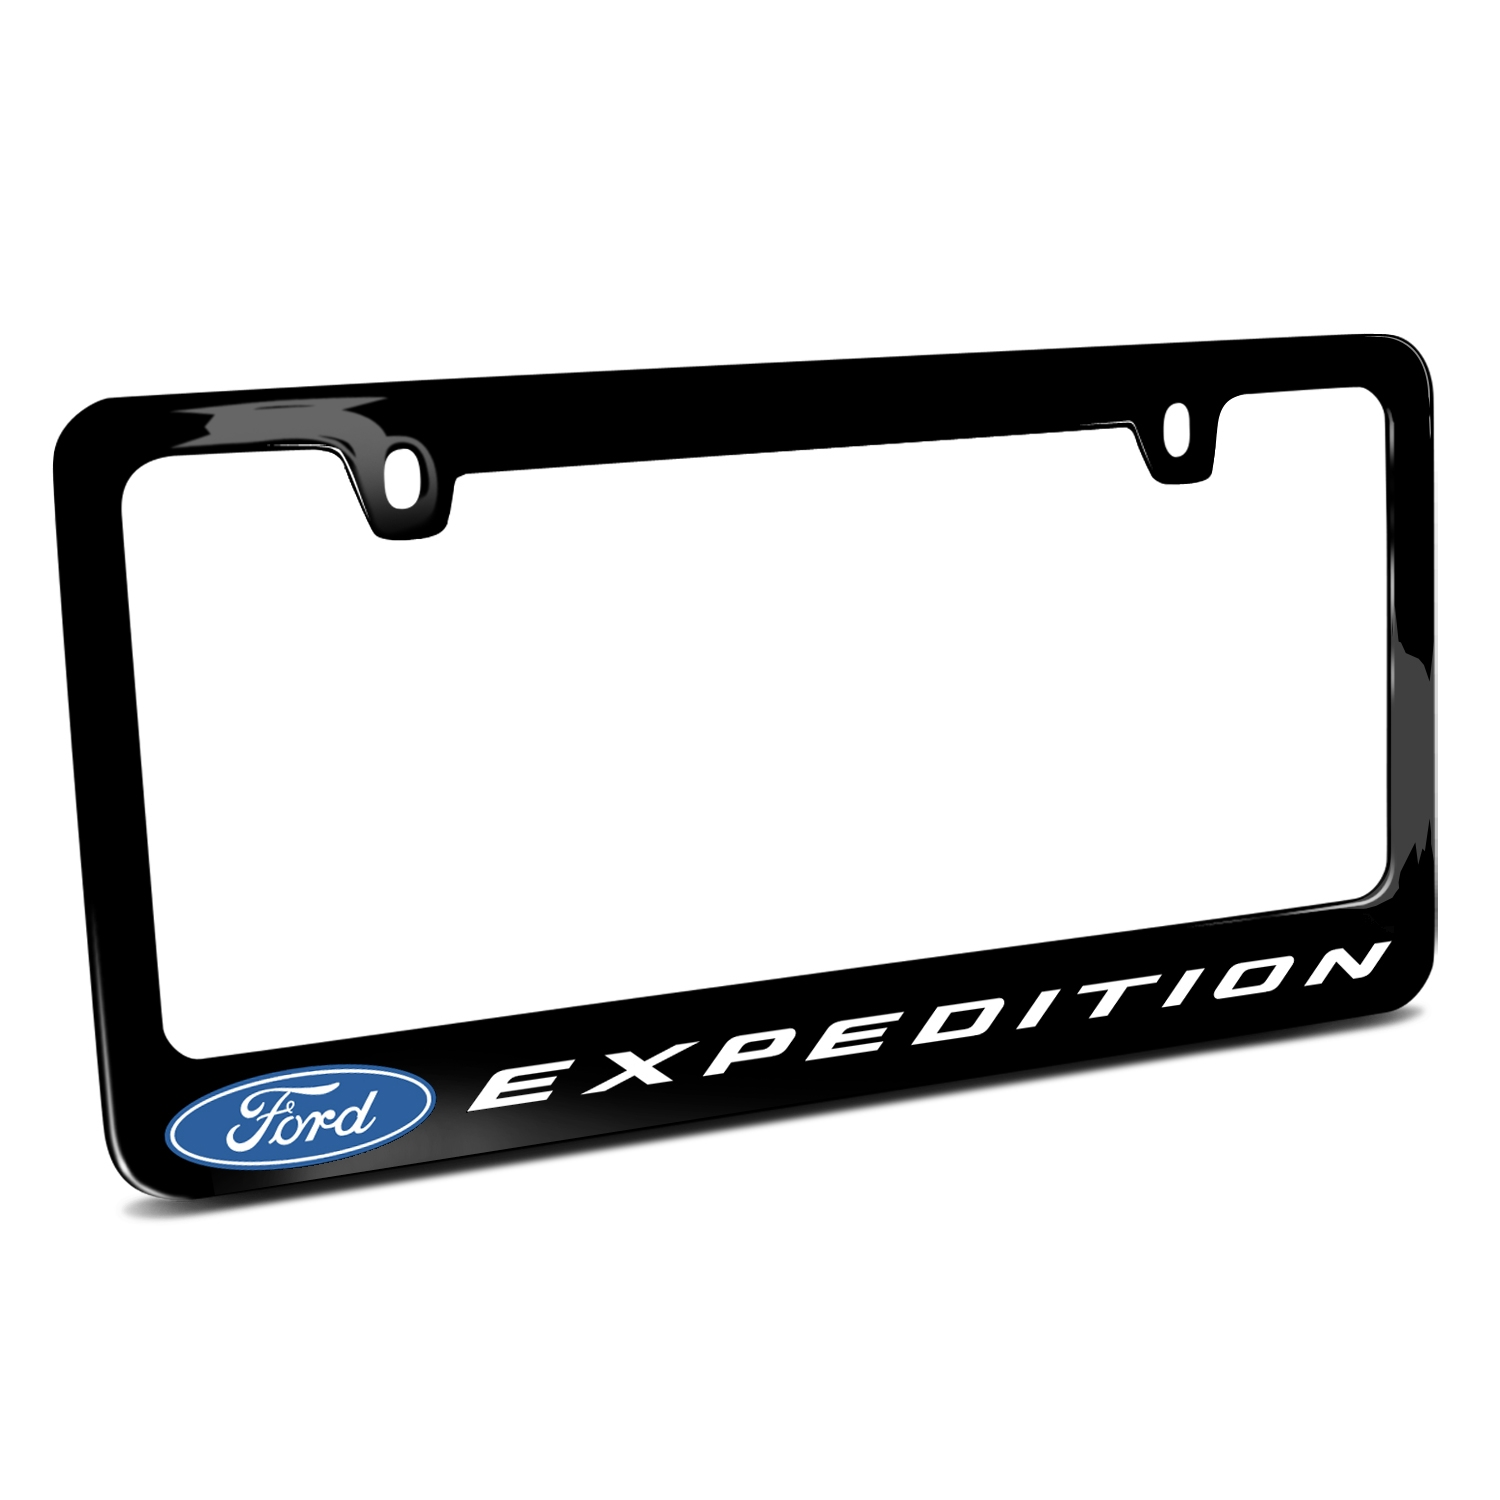 Ford Expedition Black Metal License Plate Frame